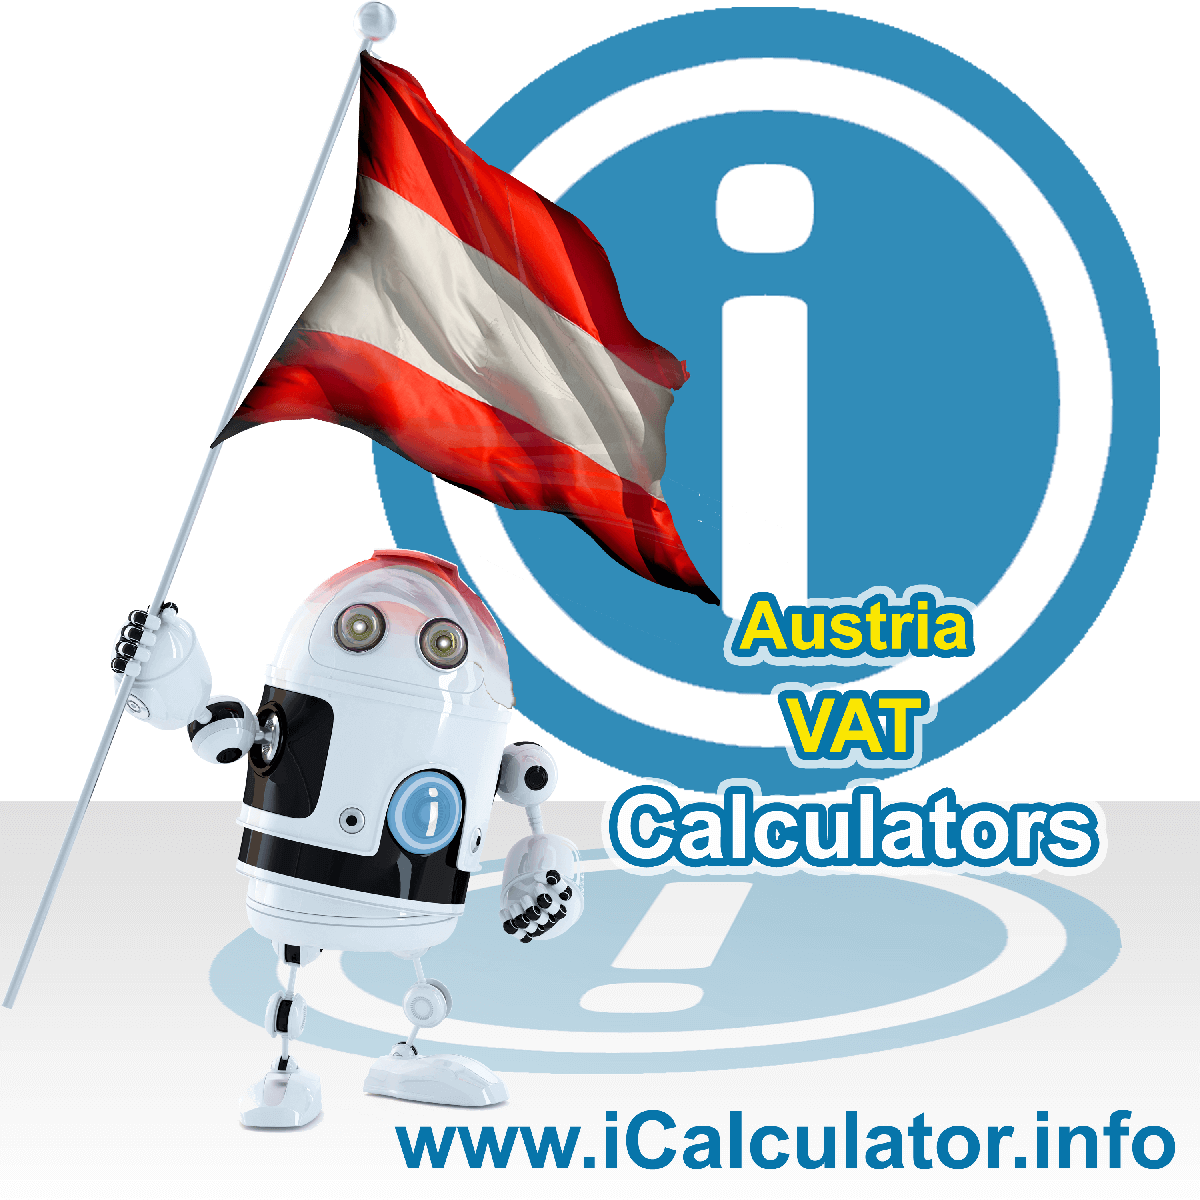 Austria VAT Calculator. This image shows the Austria flag and information relating to the VAT formula used for calculating Value Added Tax in Austria using the Austria VAT Calculator in 2020